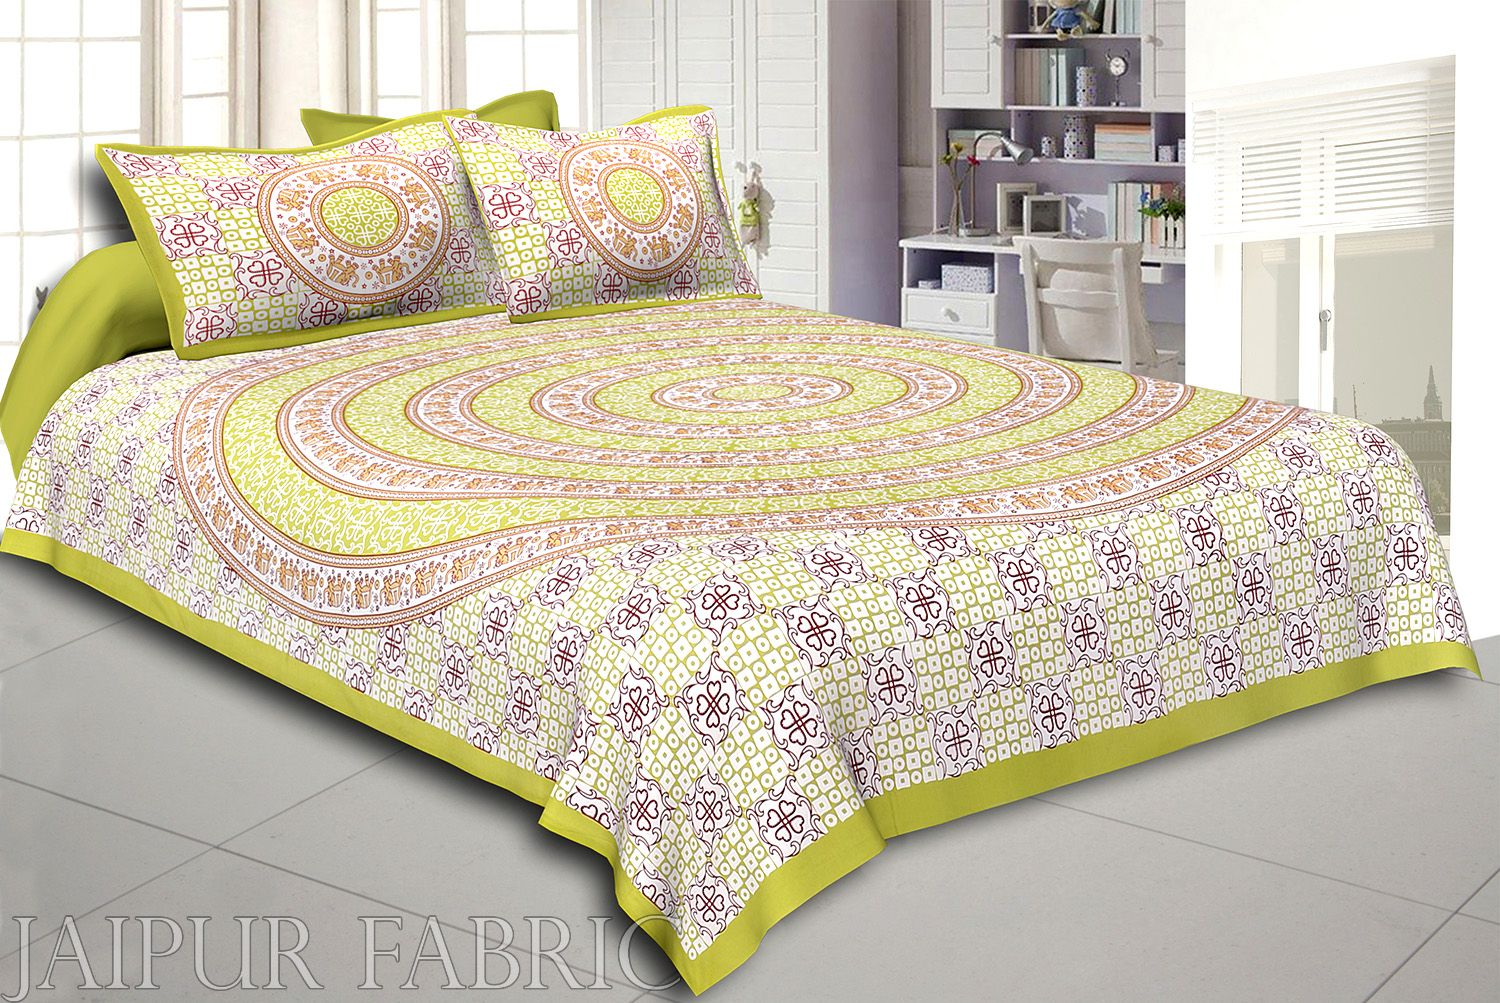 Dark Khaki Border Circle Elephant Pattern Screen Print Cotton Double Bed Sheet